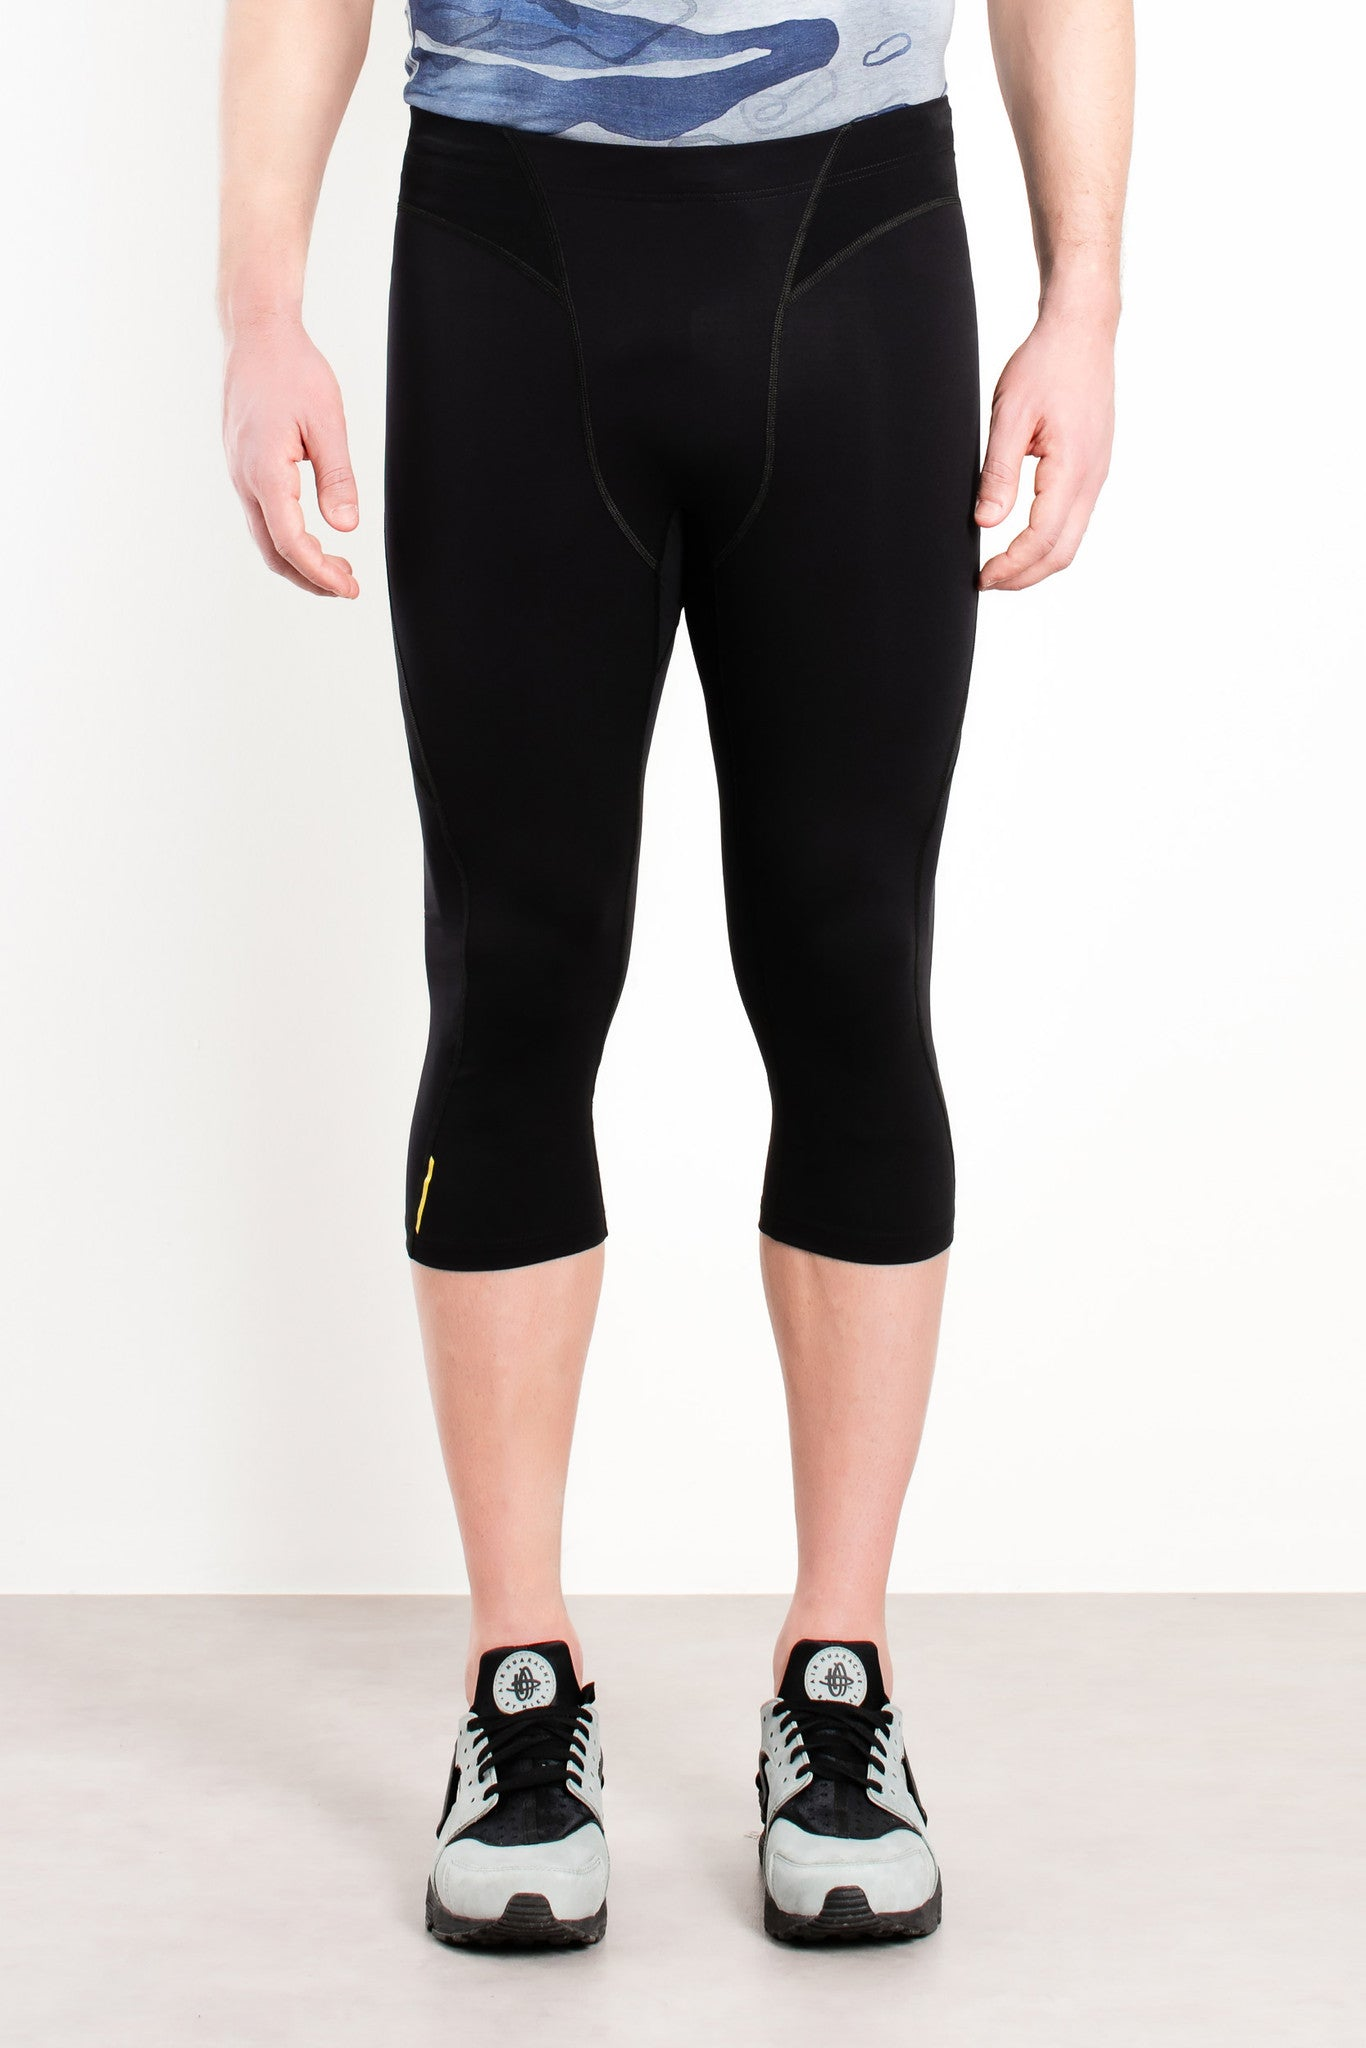 Vancouver Running Cropped Tights / Black